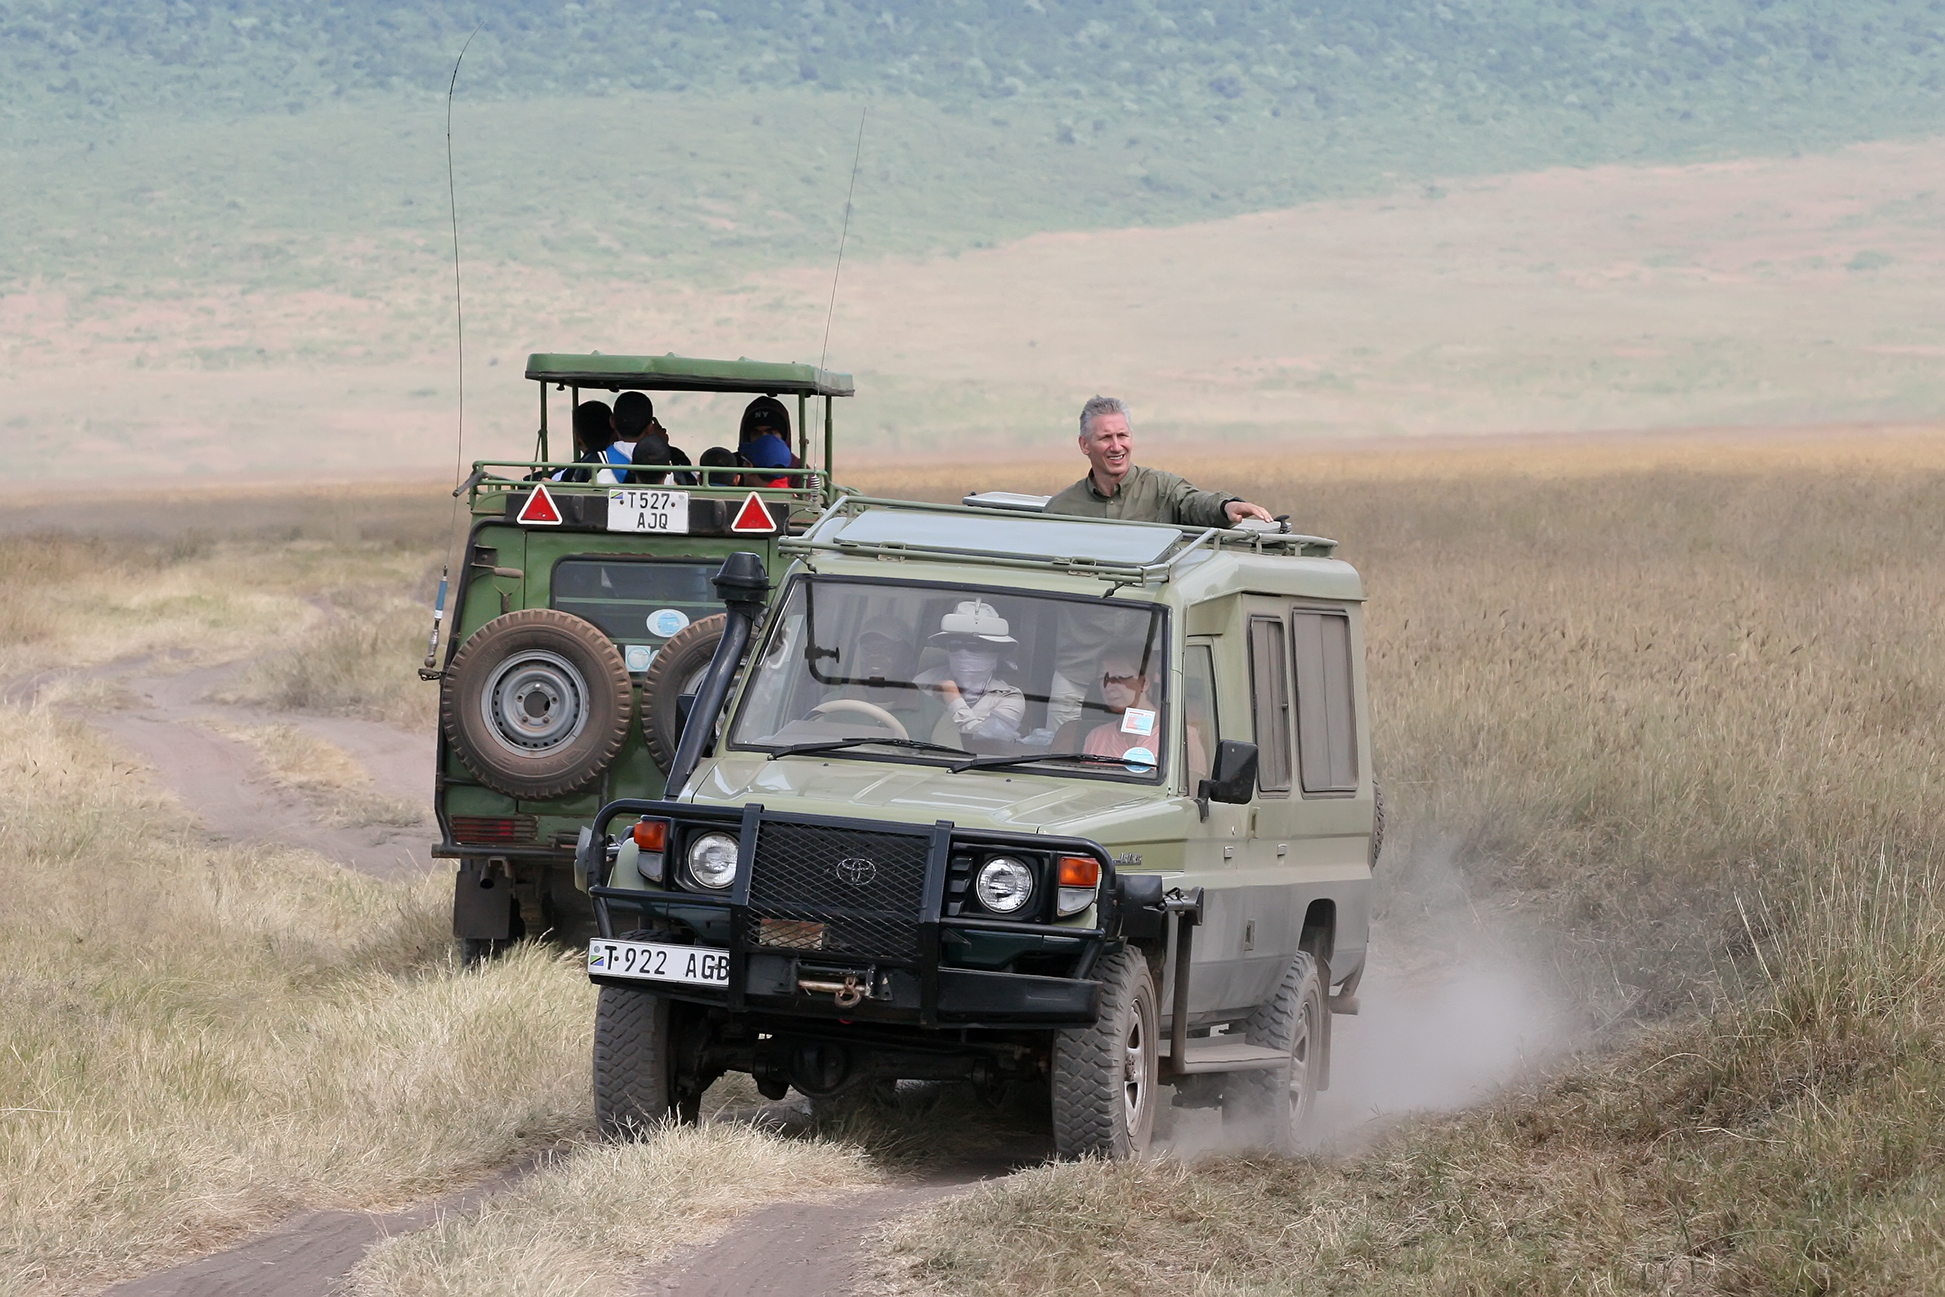 File:Safari vehicles.jpg - Wikipedia, the free encyclopedia